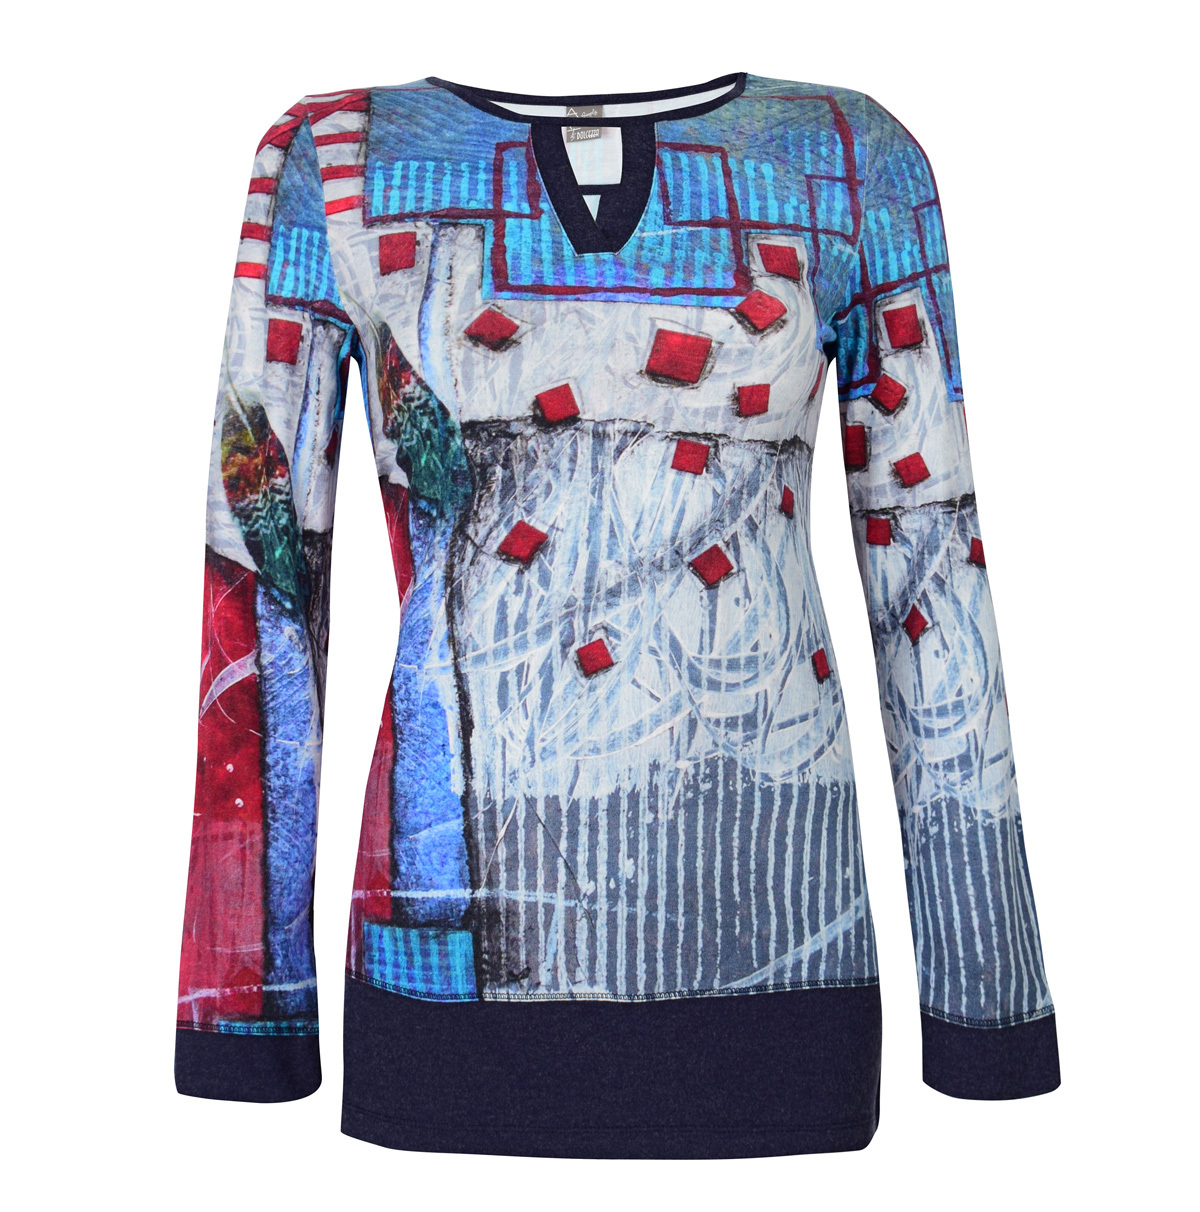 Simply Art Dolcezza: Only Love Spiritually Square Abstract Art Tunic (1 Left!) Dolcezza_SimplyArt_59662